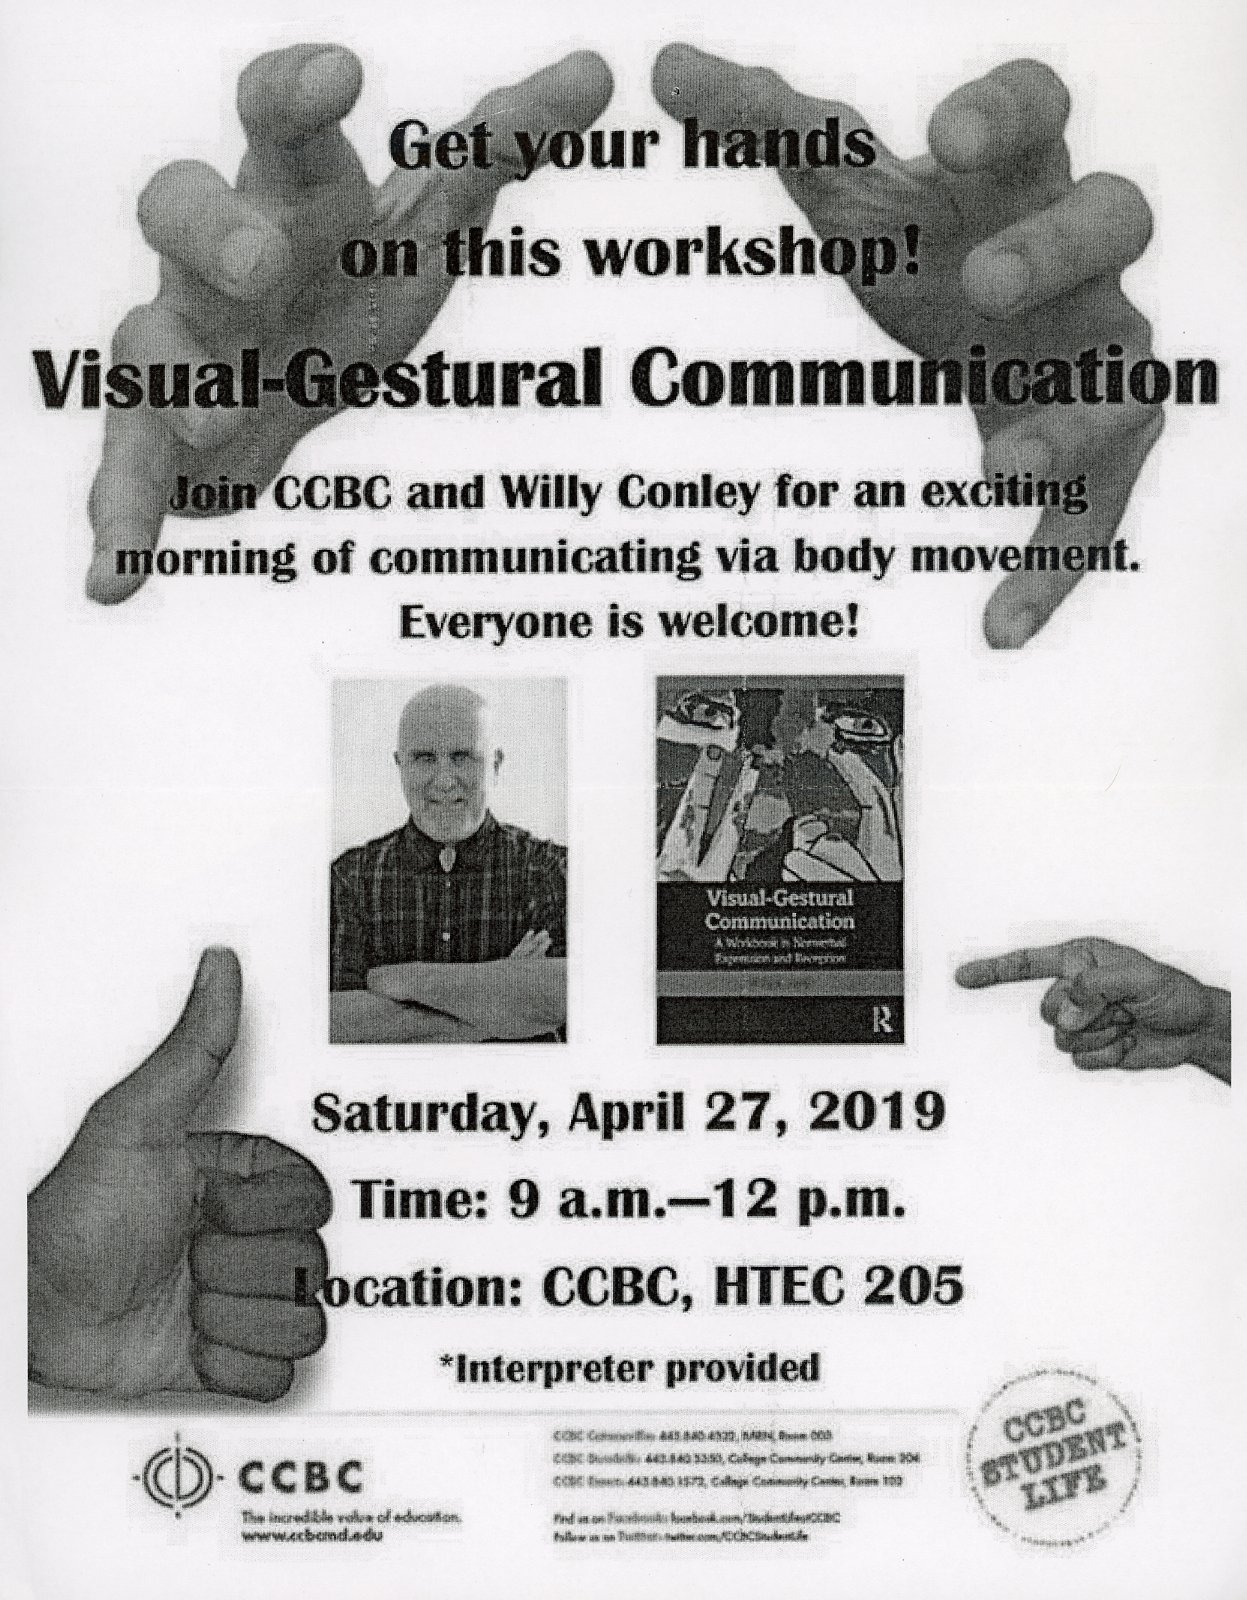 Visual-Gestural Communication Workshop